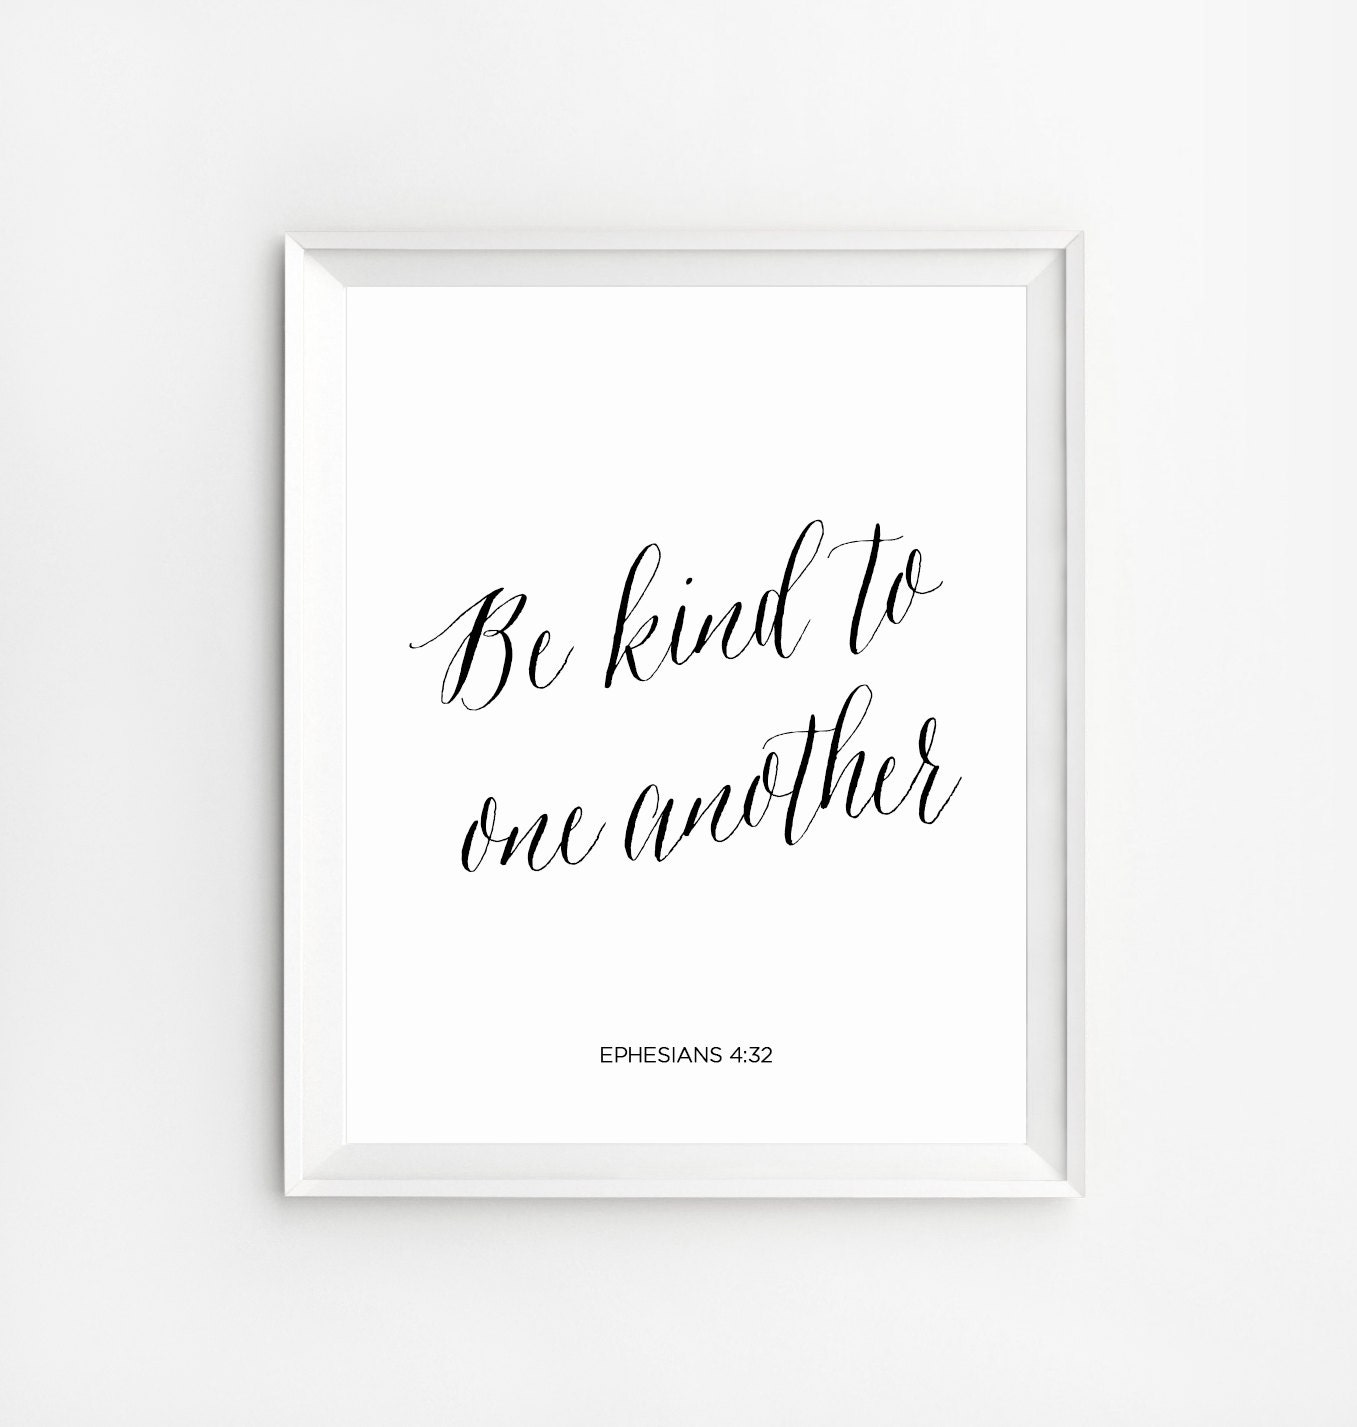 Kindness Quotes Be Kind To One Another Christian Home Decor Etsy